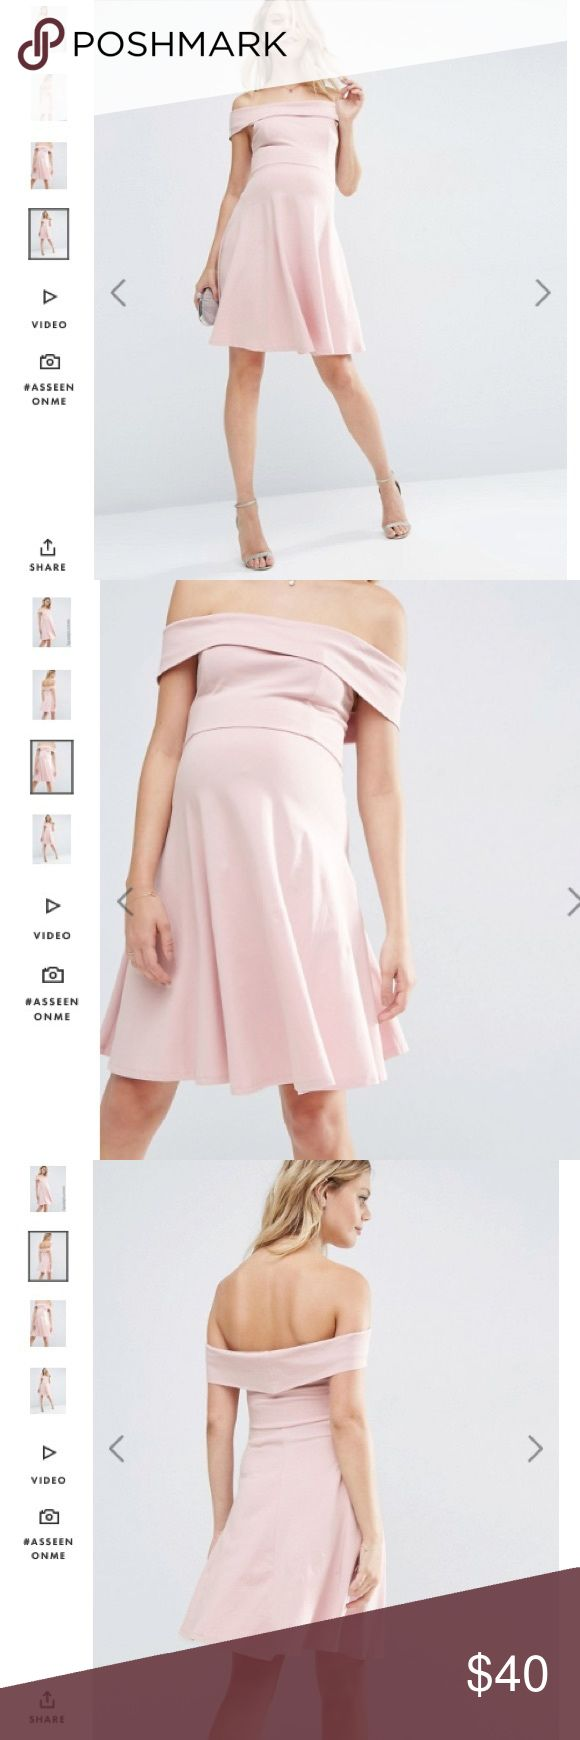 Sale 💞NWT Asos maternity blush color dress 6 NWT Gorgeous cotton dress size 6. Very beautiful on ☺️ ASOS Maternity Dresses